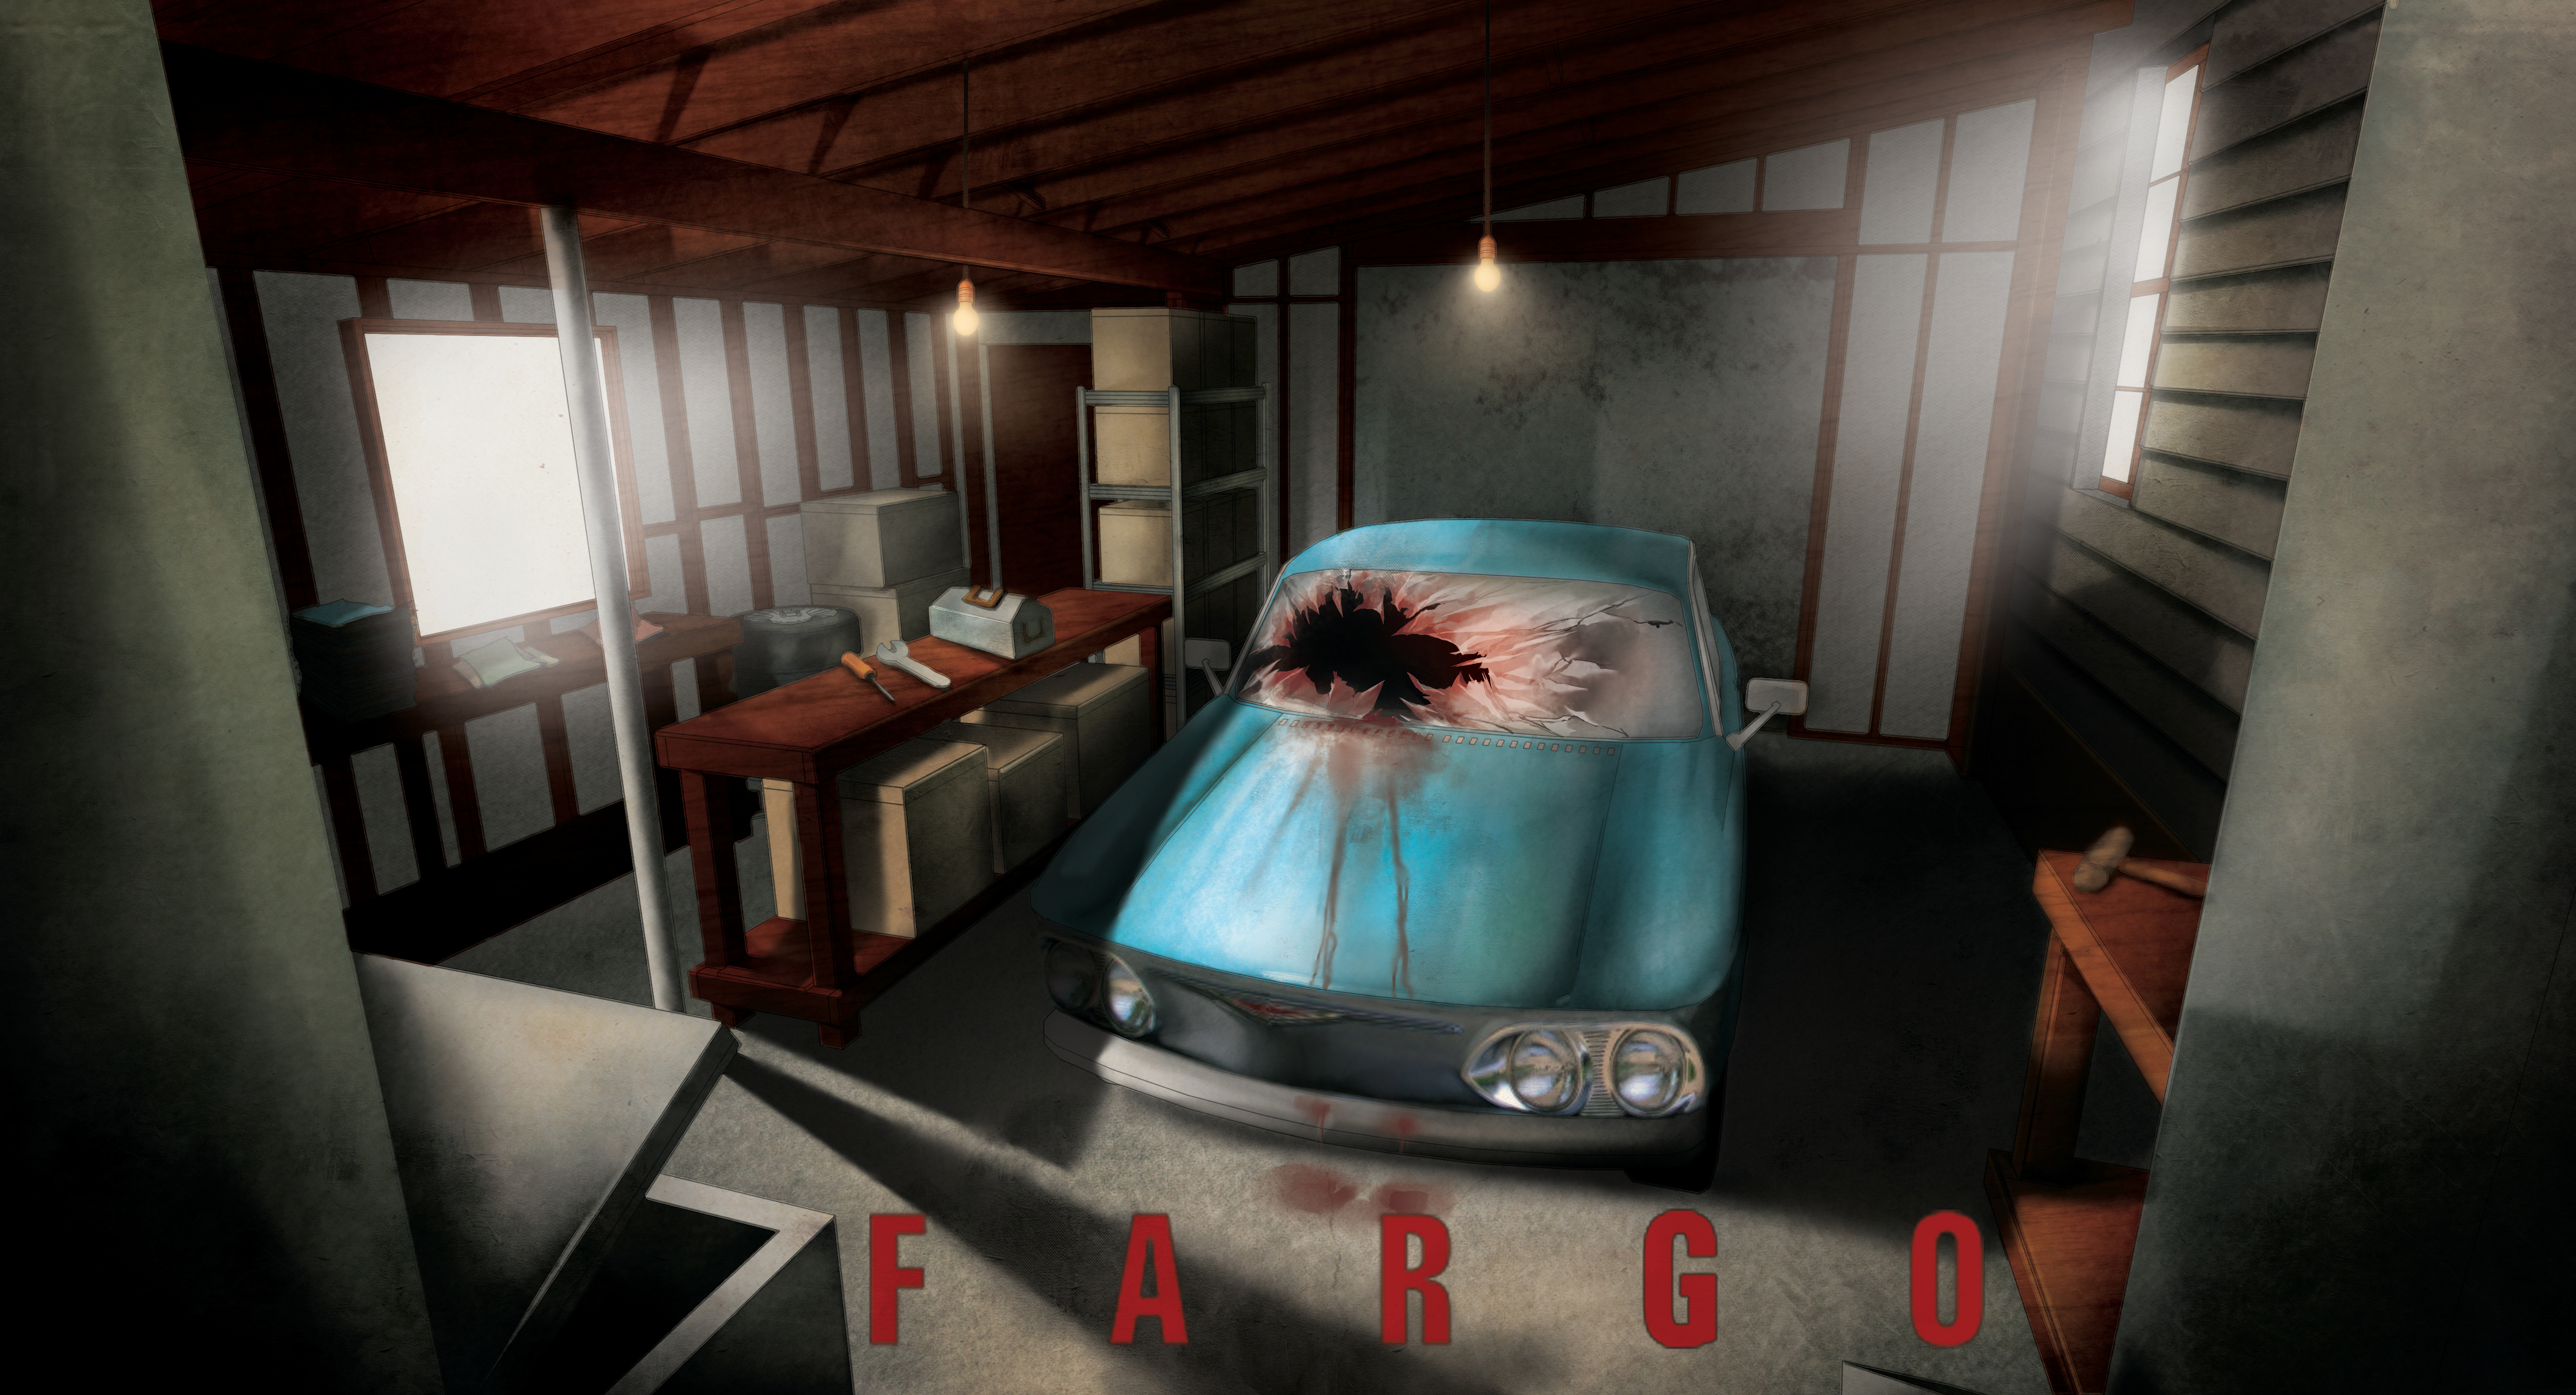 Fargo Y2 - ED AND PEGGY'S A4